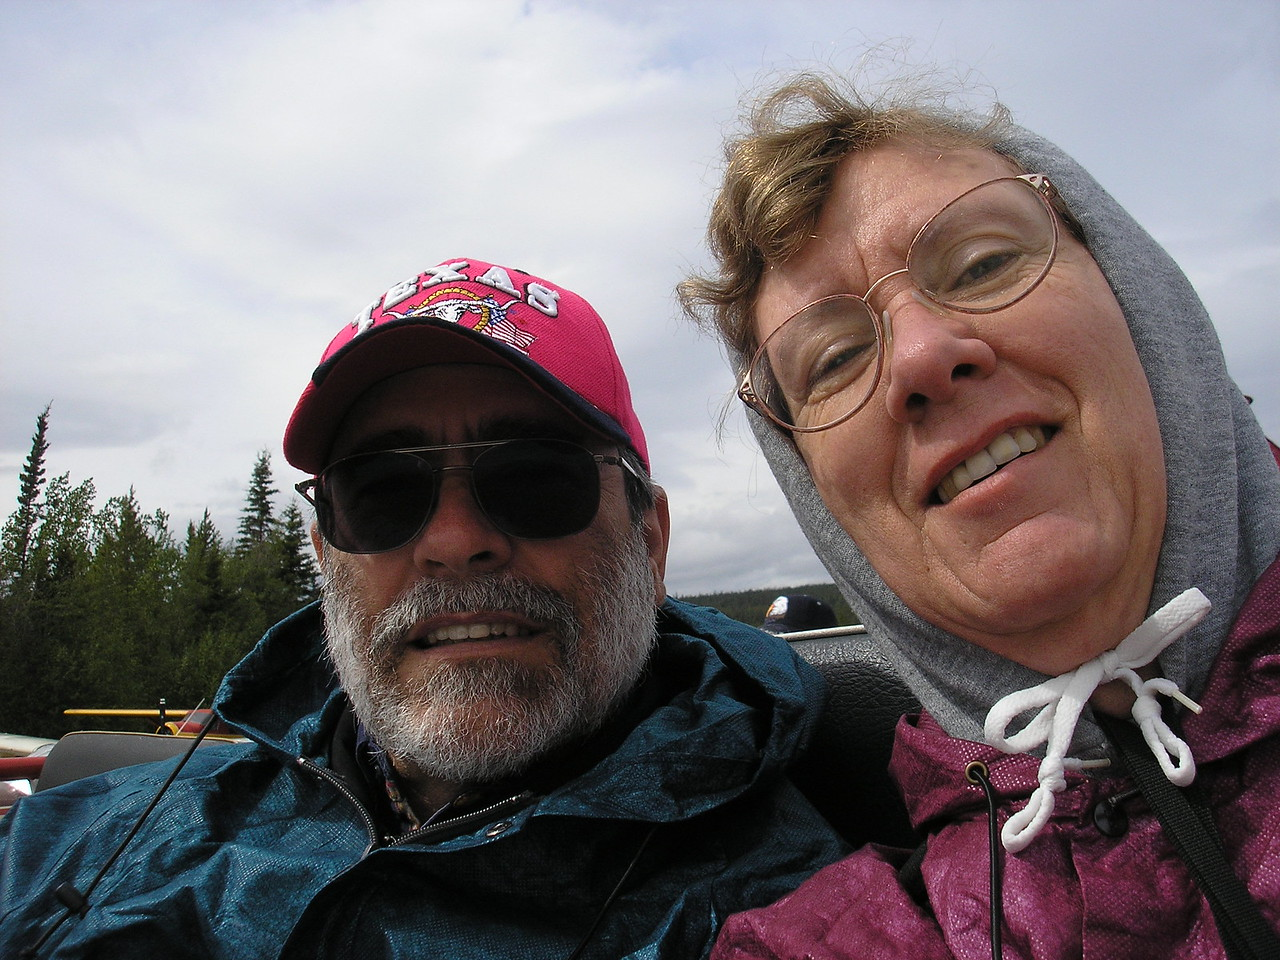 Here is a self portrait of John and I having fun on a rainy day in the town of Whitehorse, Yukon Territories, Canada.  We took a one hour cruise in the Yukon River.